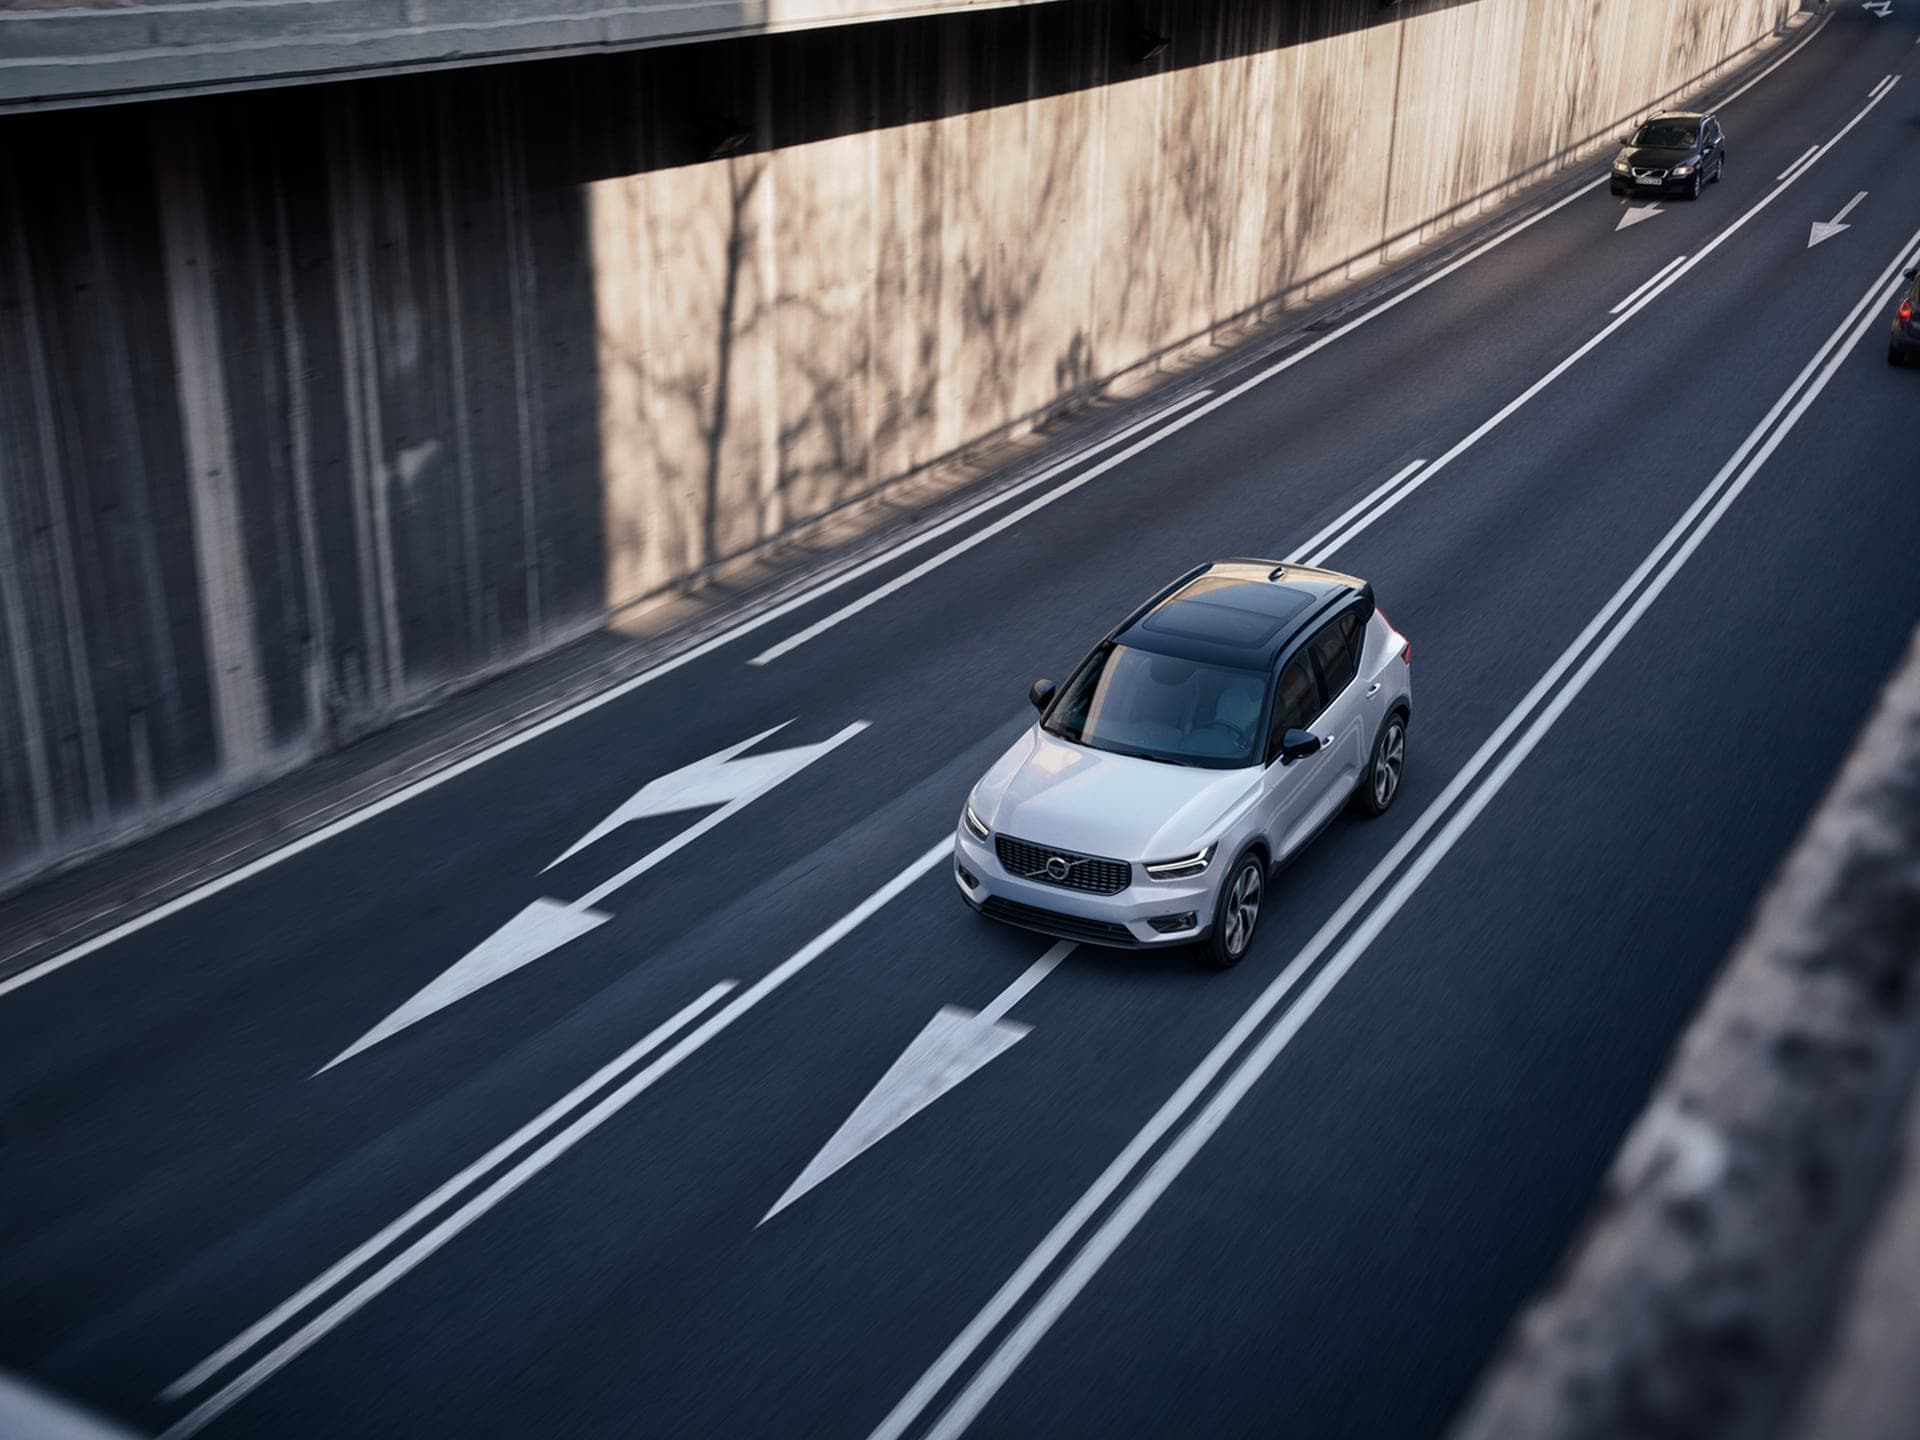 A white XC40 driving on a multi-lane road supported by driver assistance technology.